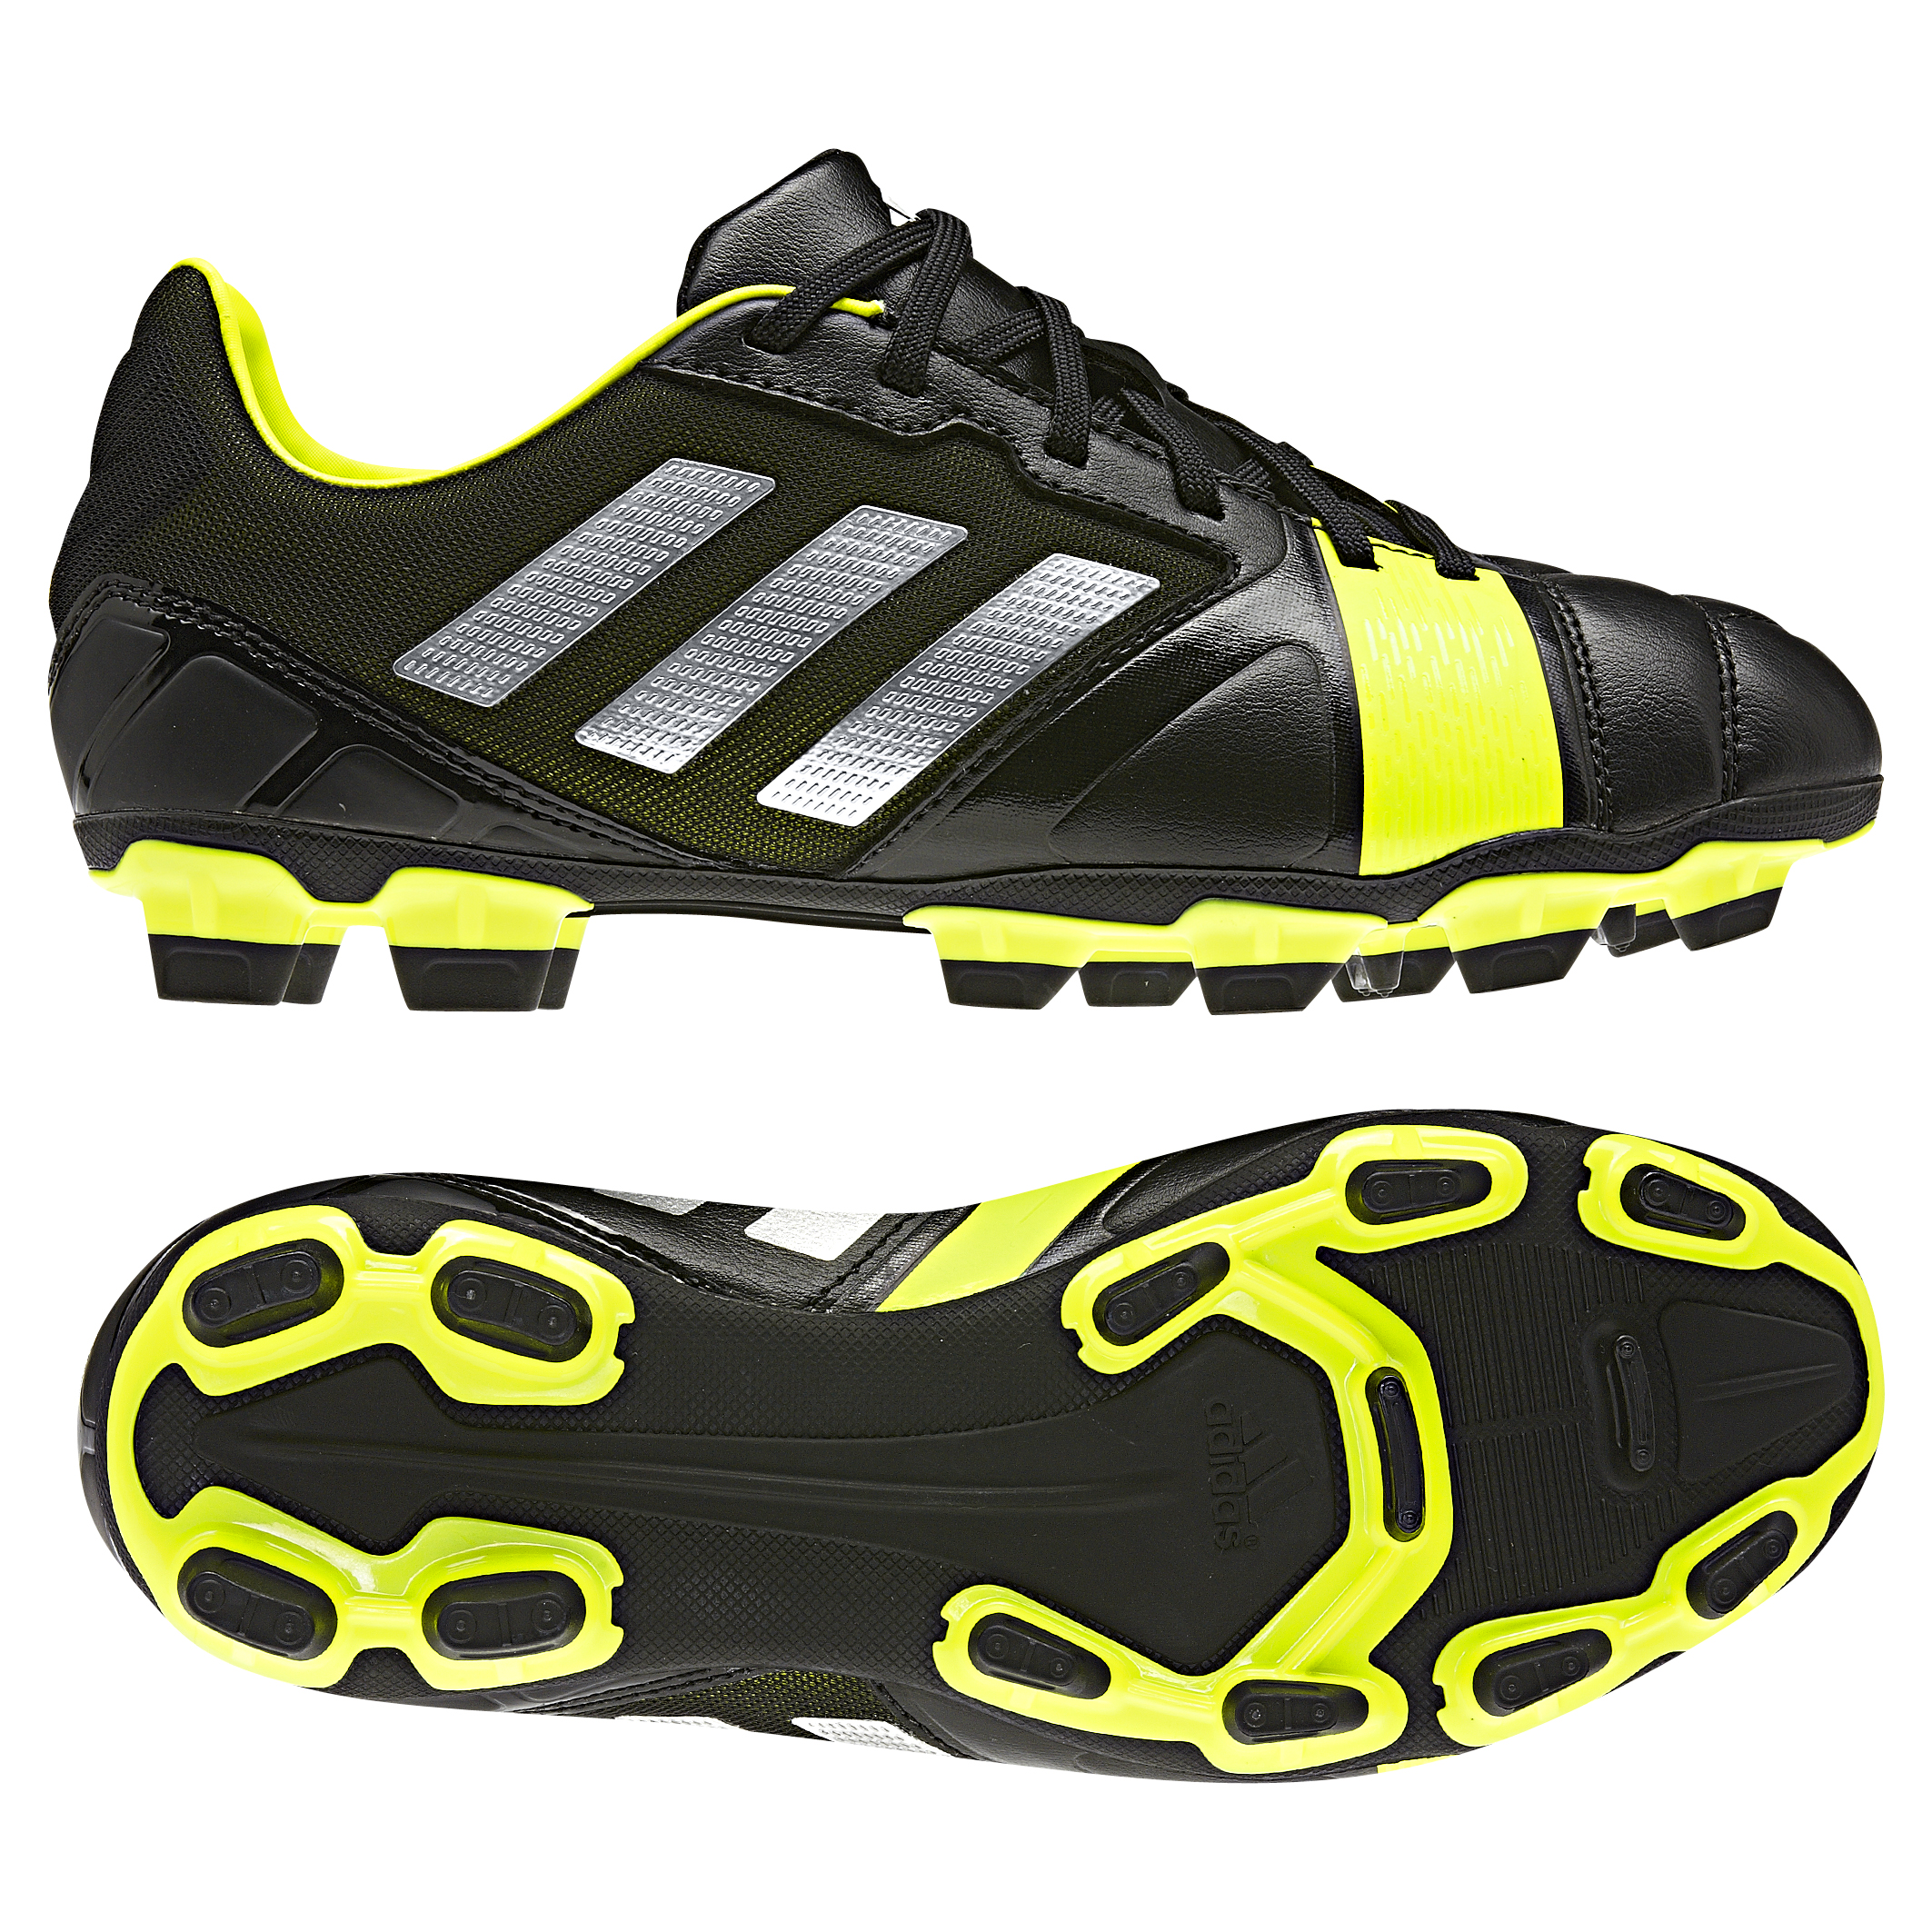 Adidas Nitrocharge 2.0 TRX Firm Ground Football Boots - Kids Black